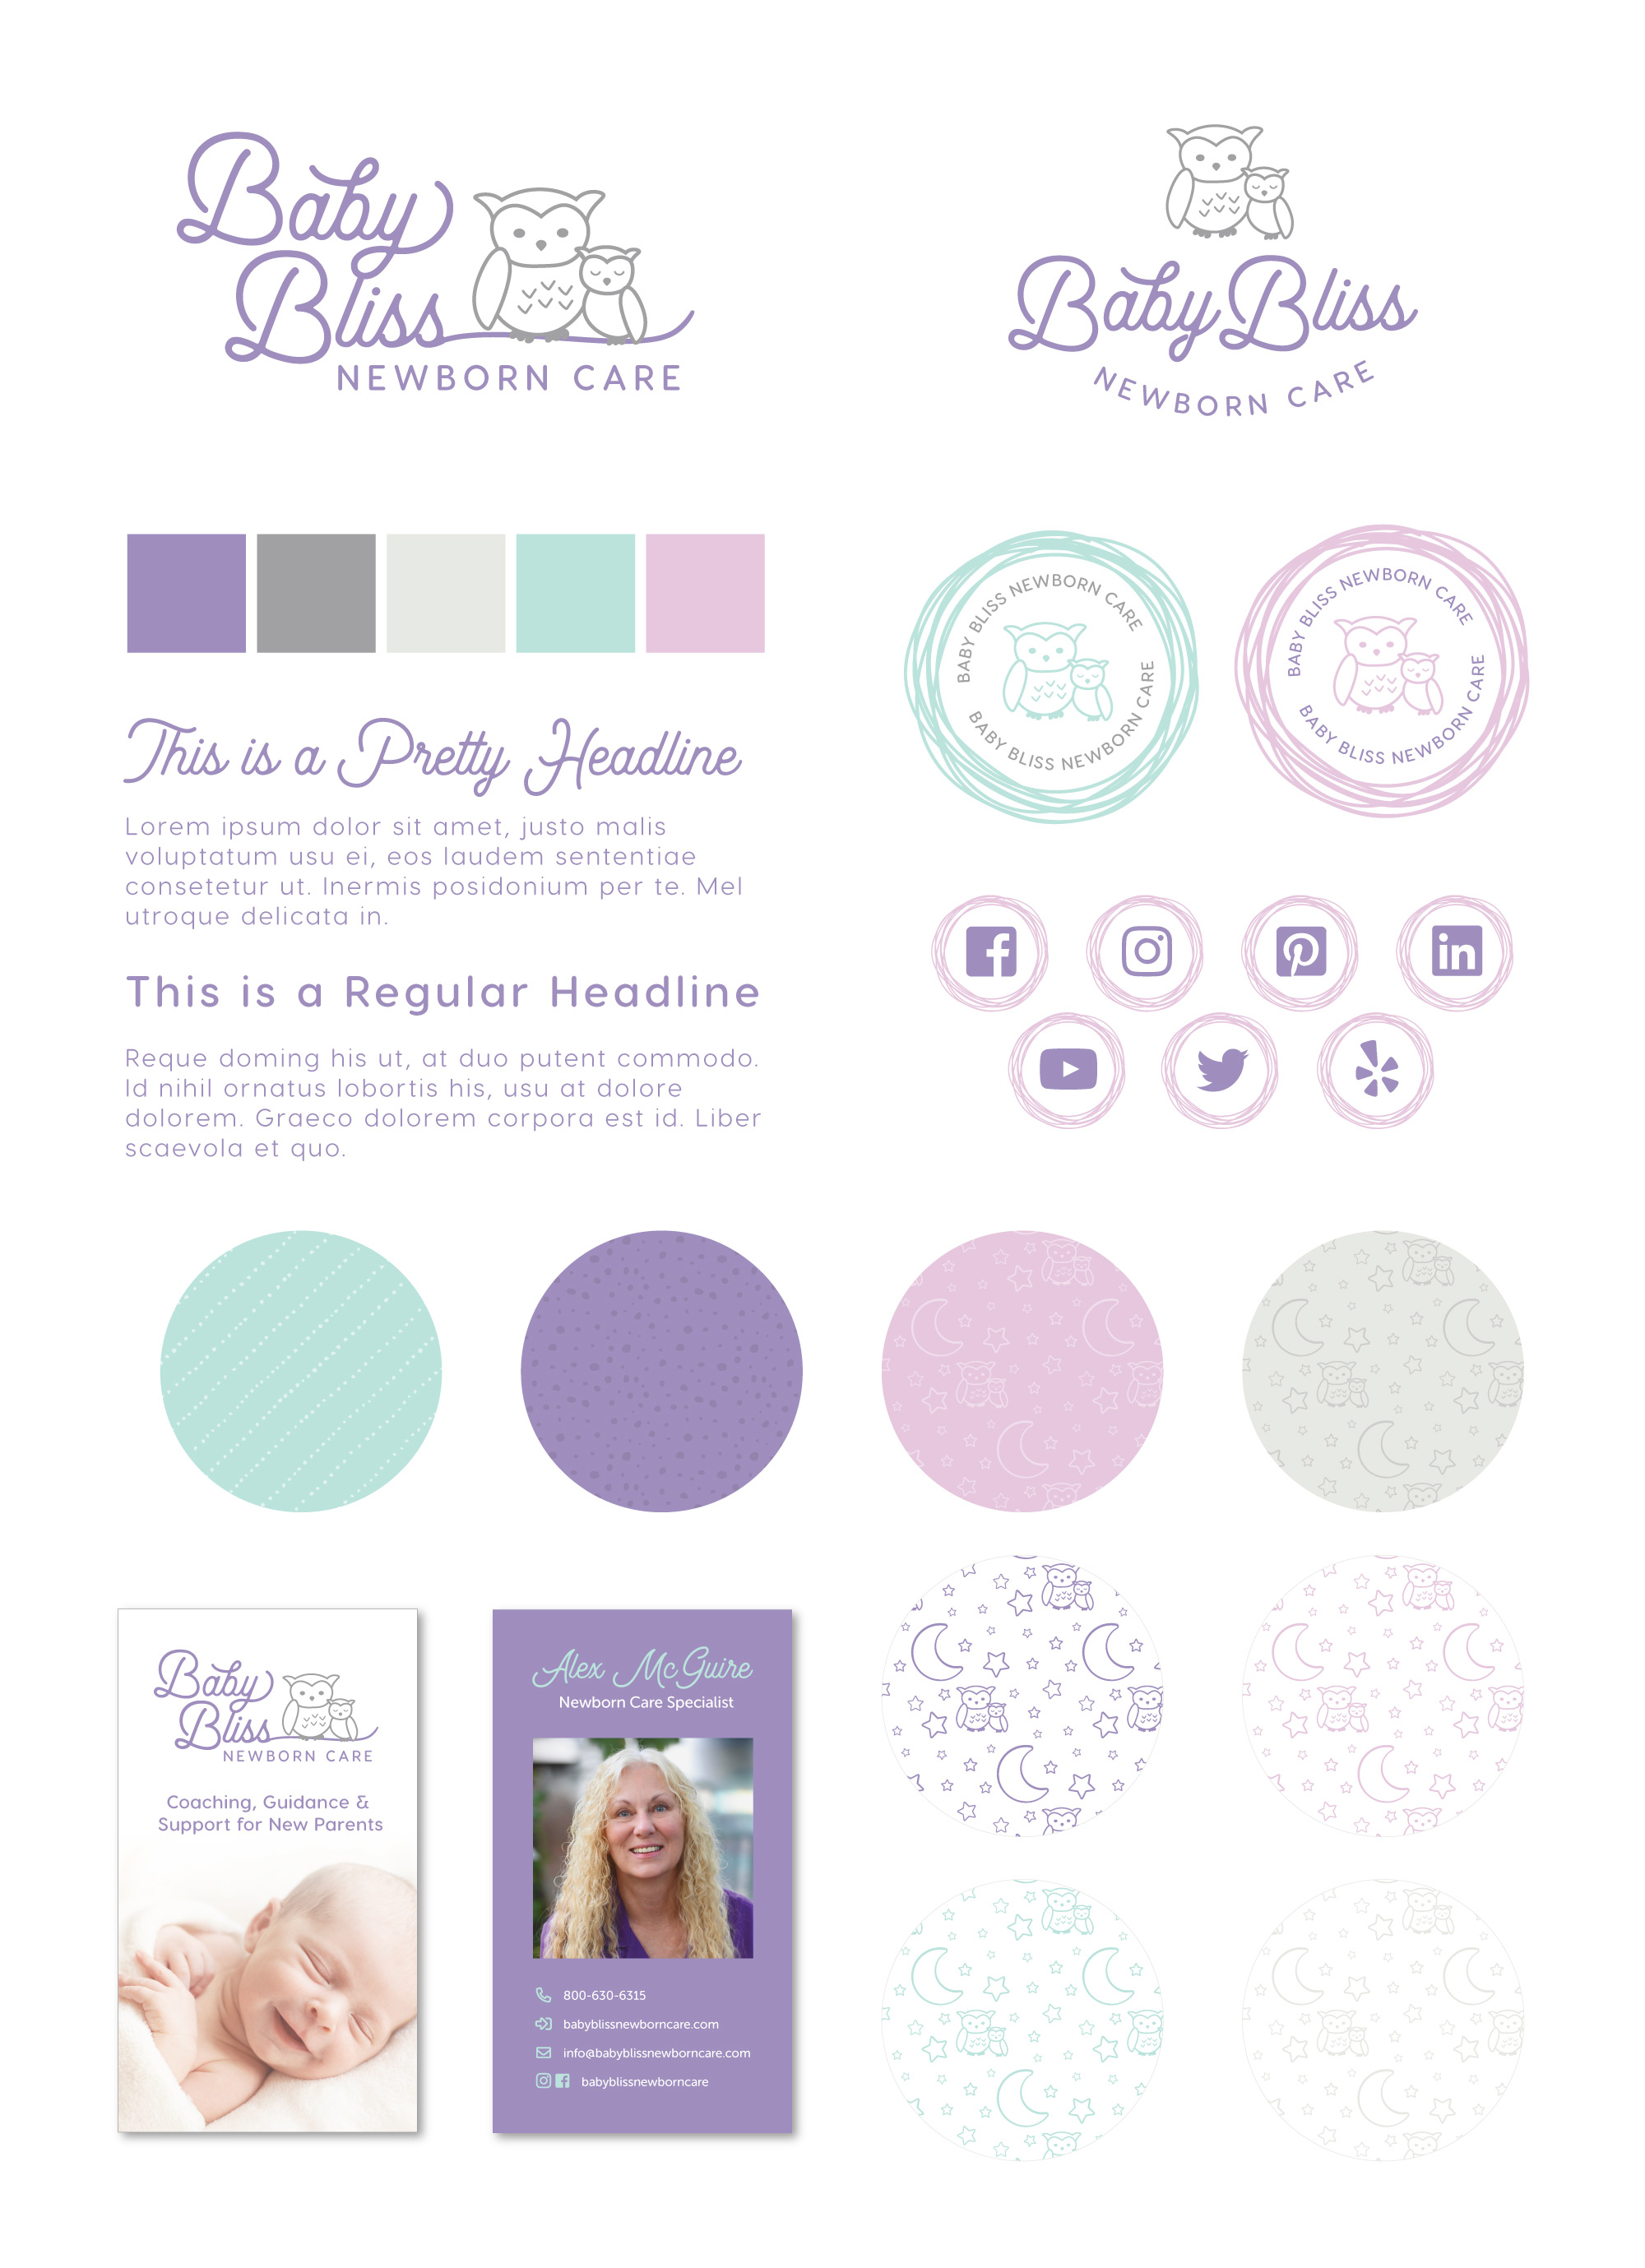 postpartum doula website design, baby nurse website